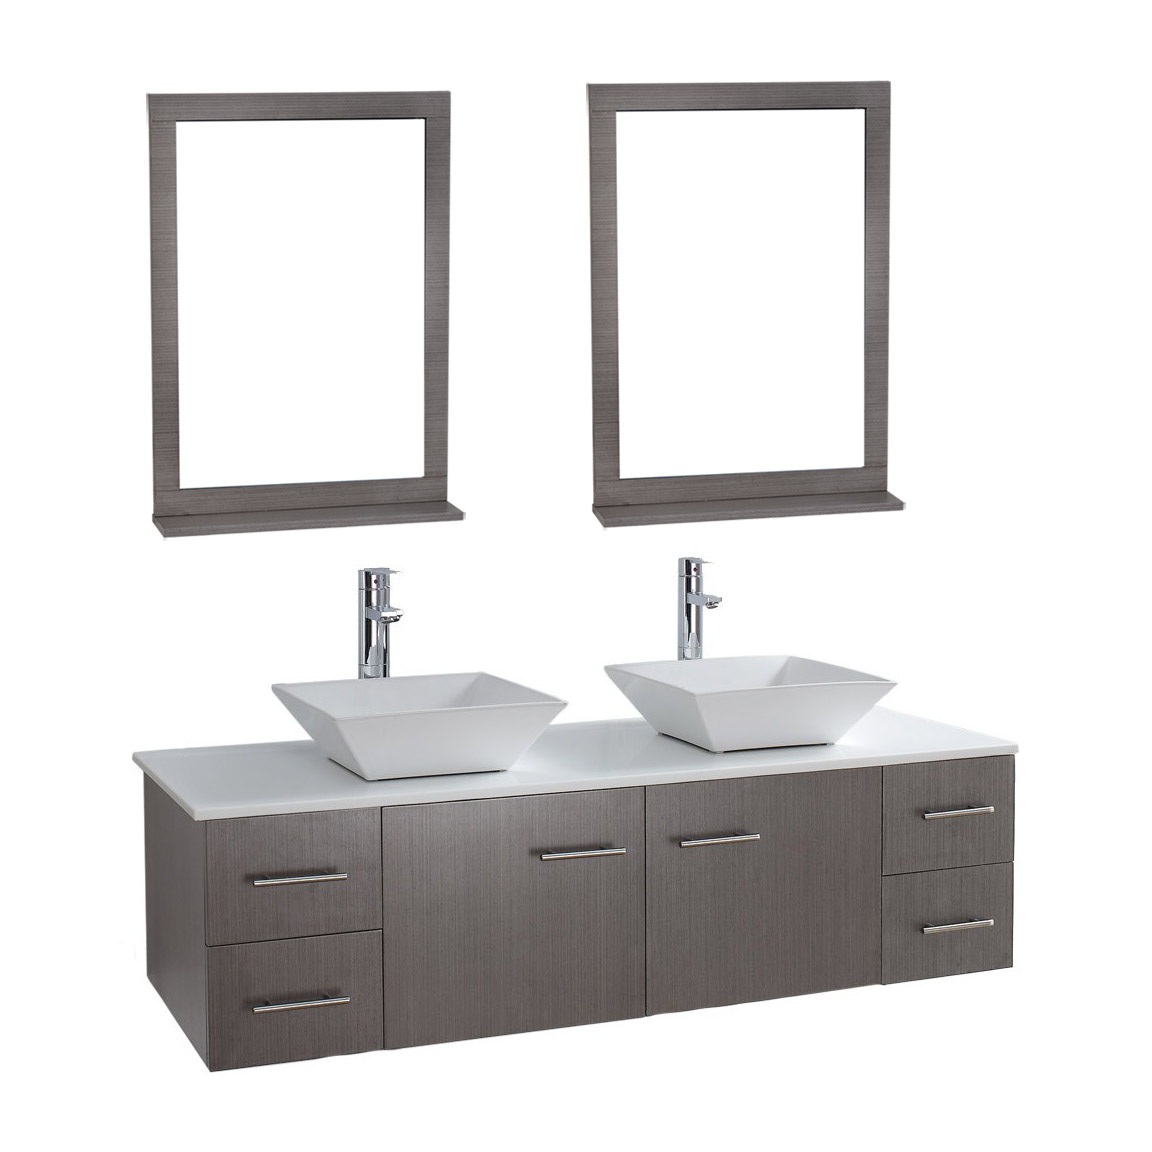 Siena solid wood 71 wall mounted double bathroom vanity for Mirror vanity